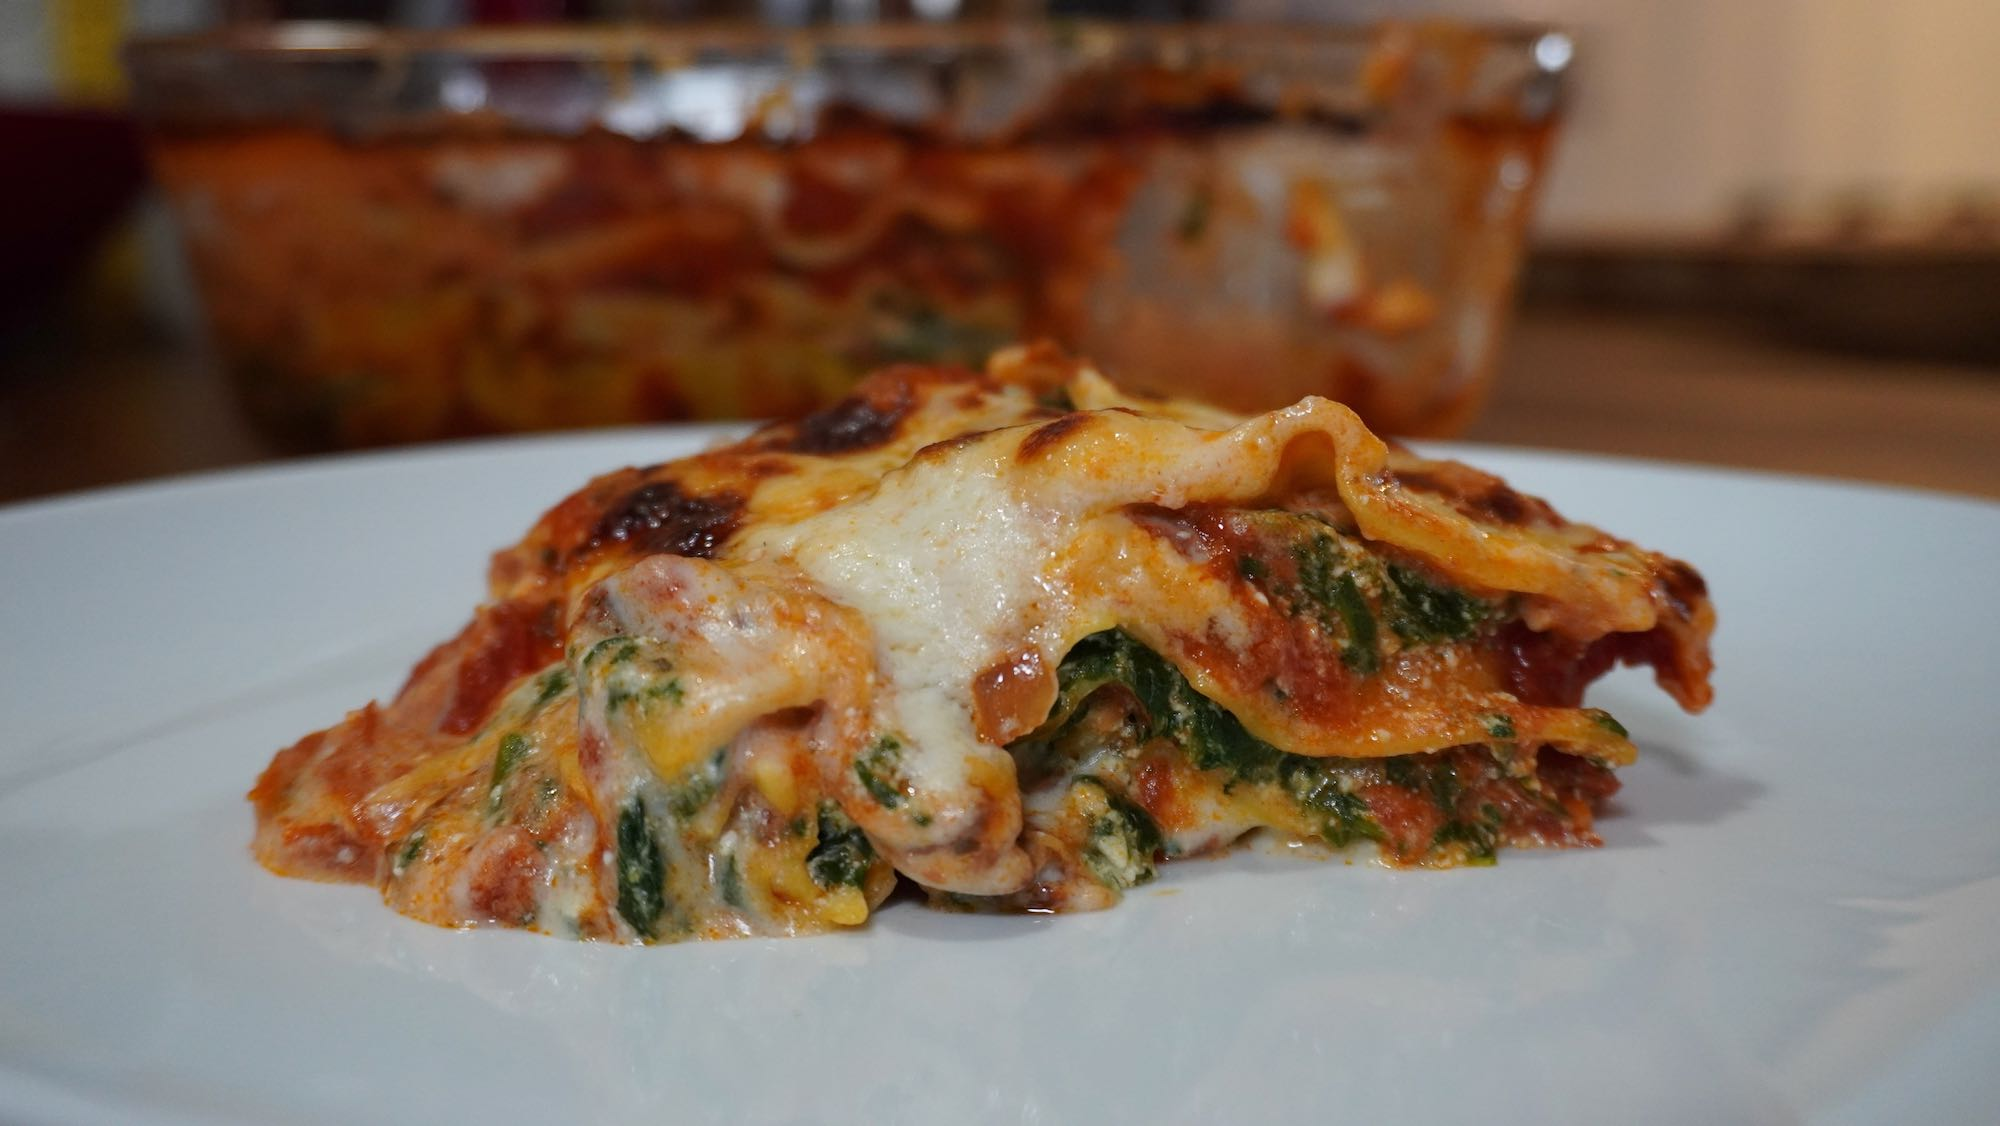 Vegetarian Lasagne: Spinach and Ricotta